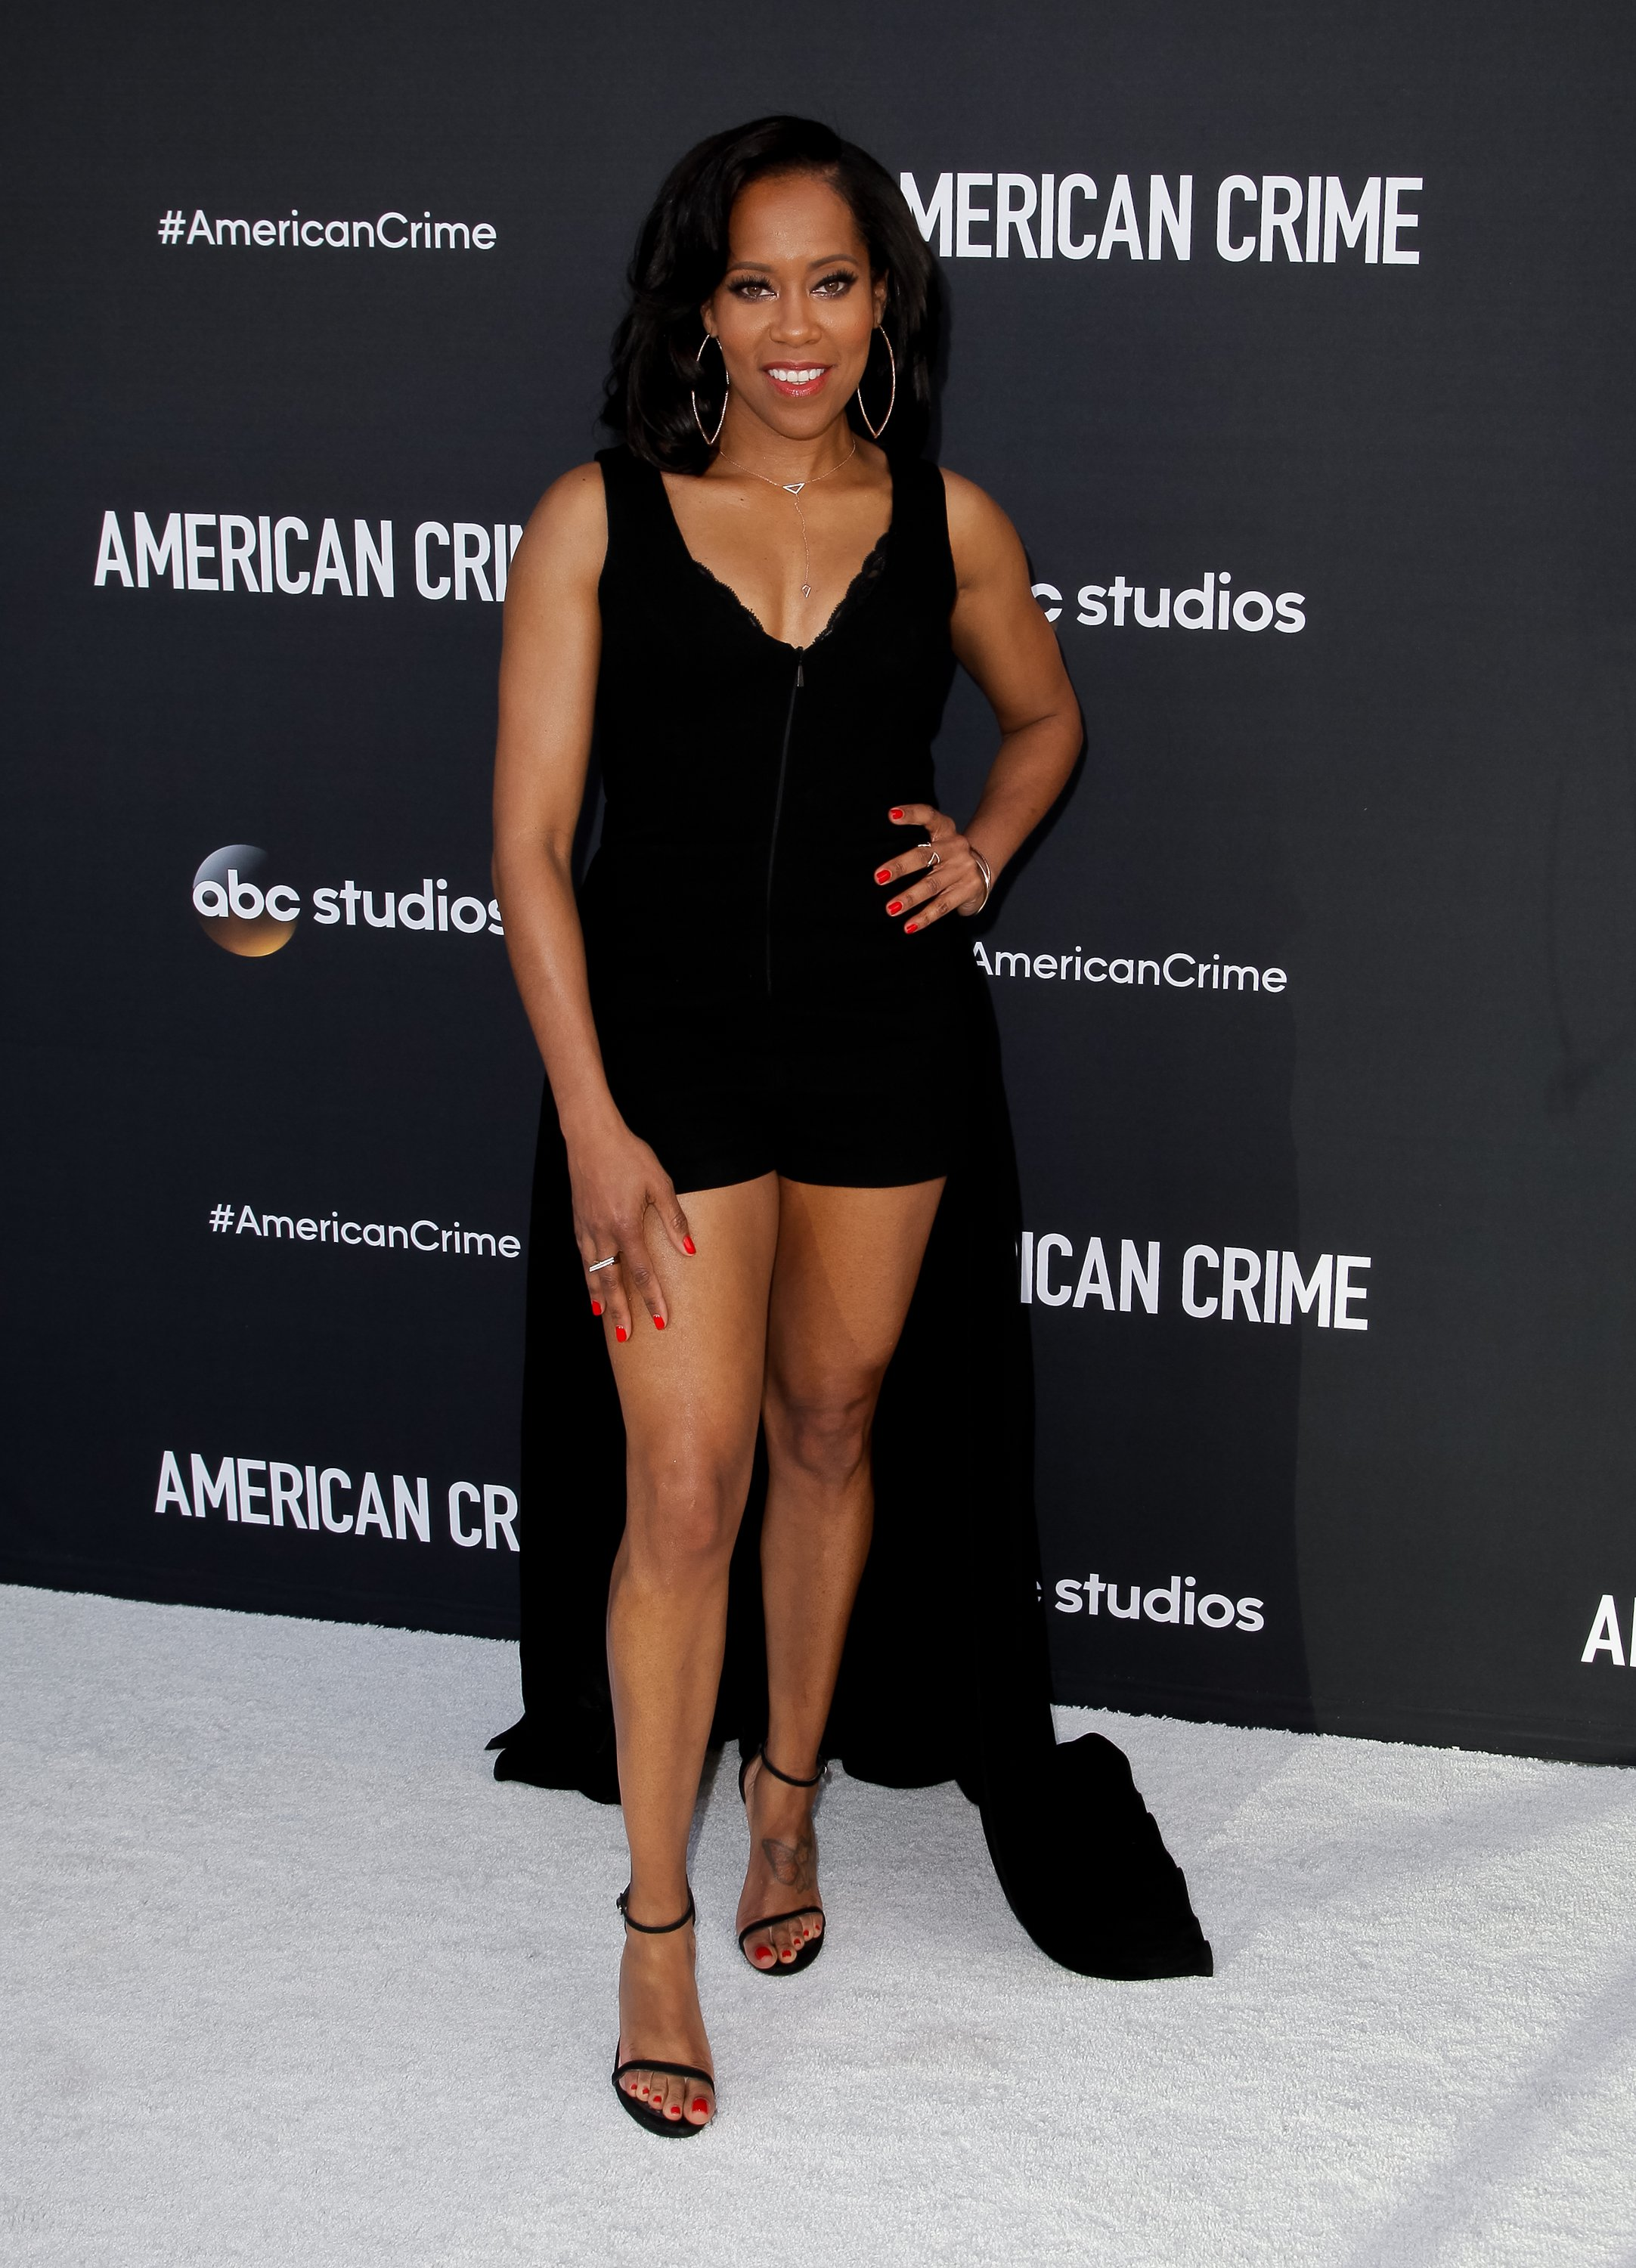 Regina King at the Saban Media Center, 2017 in California | Source: Getty Images